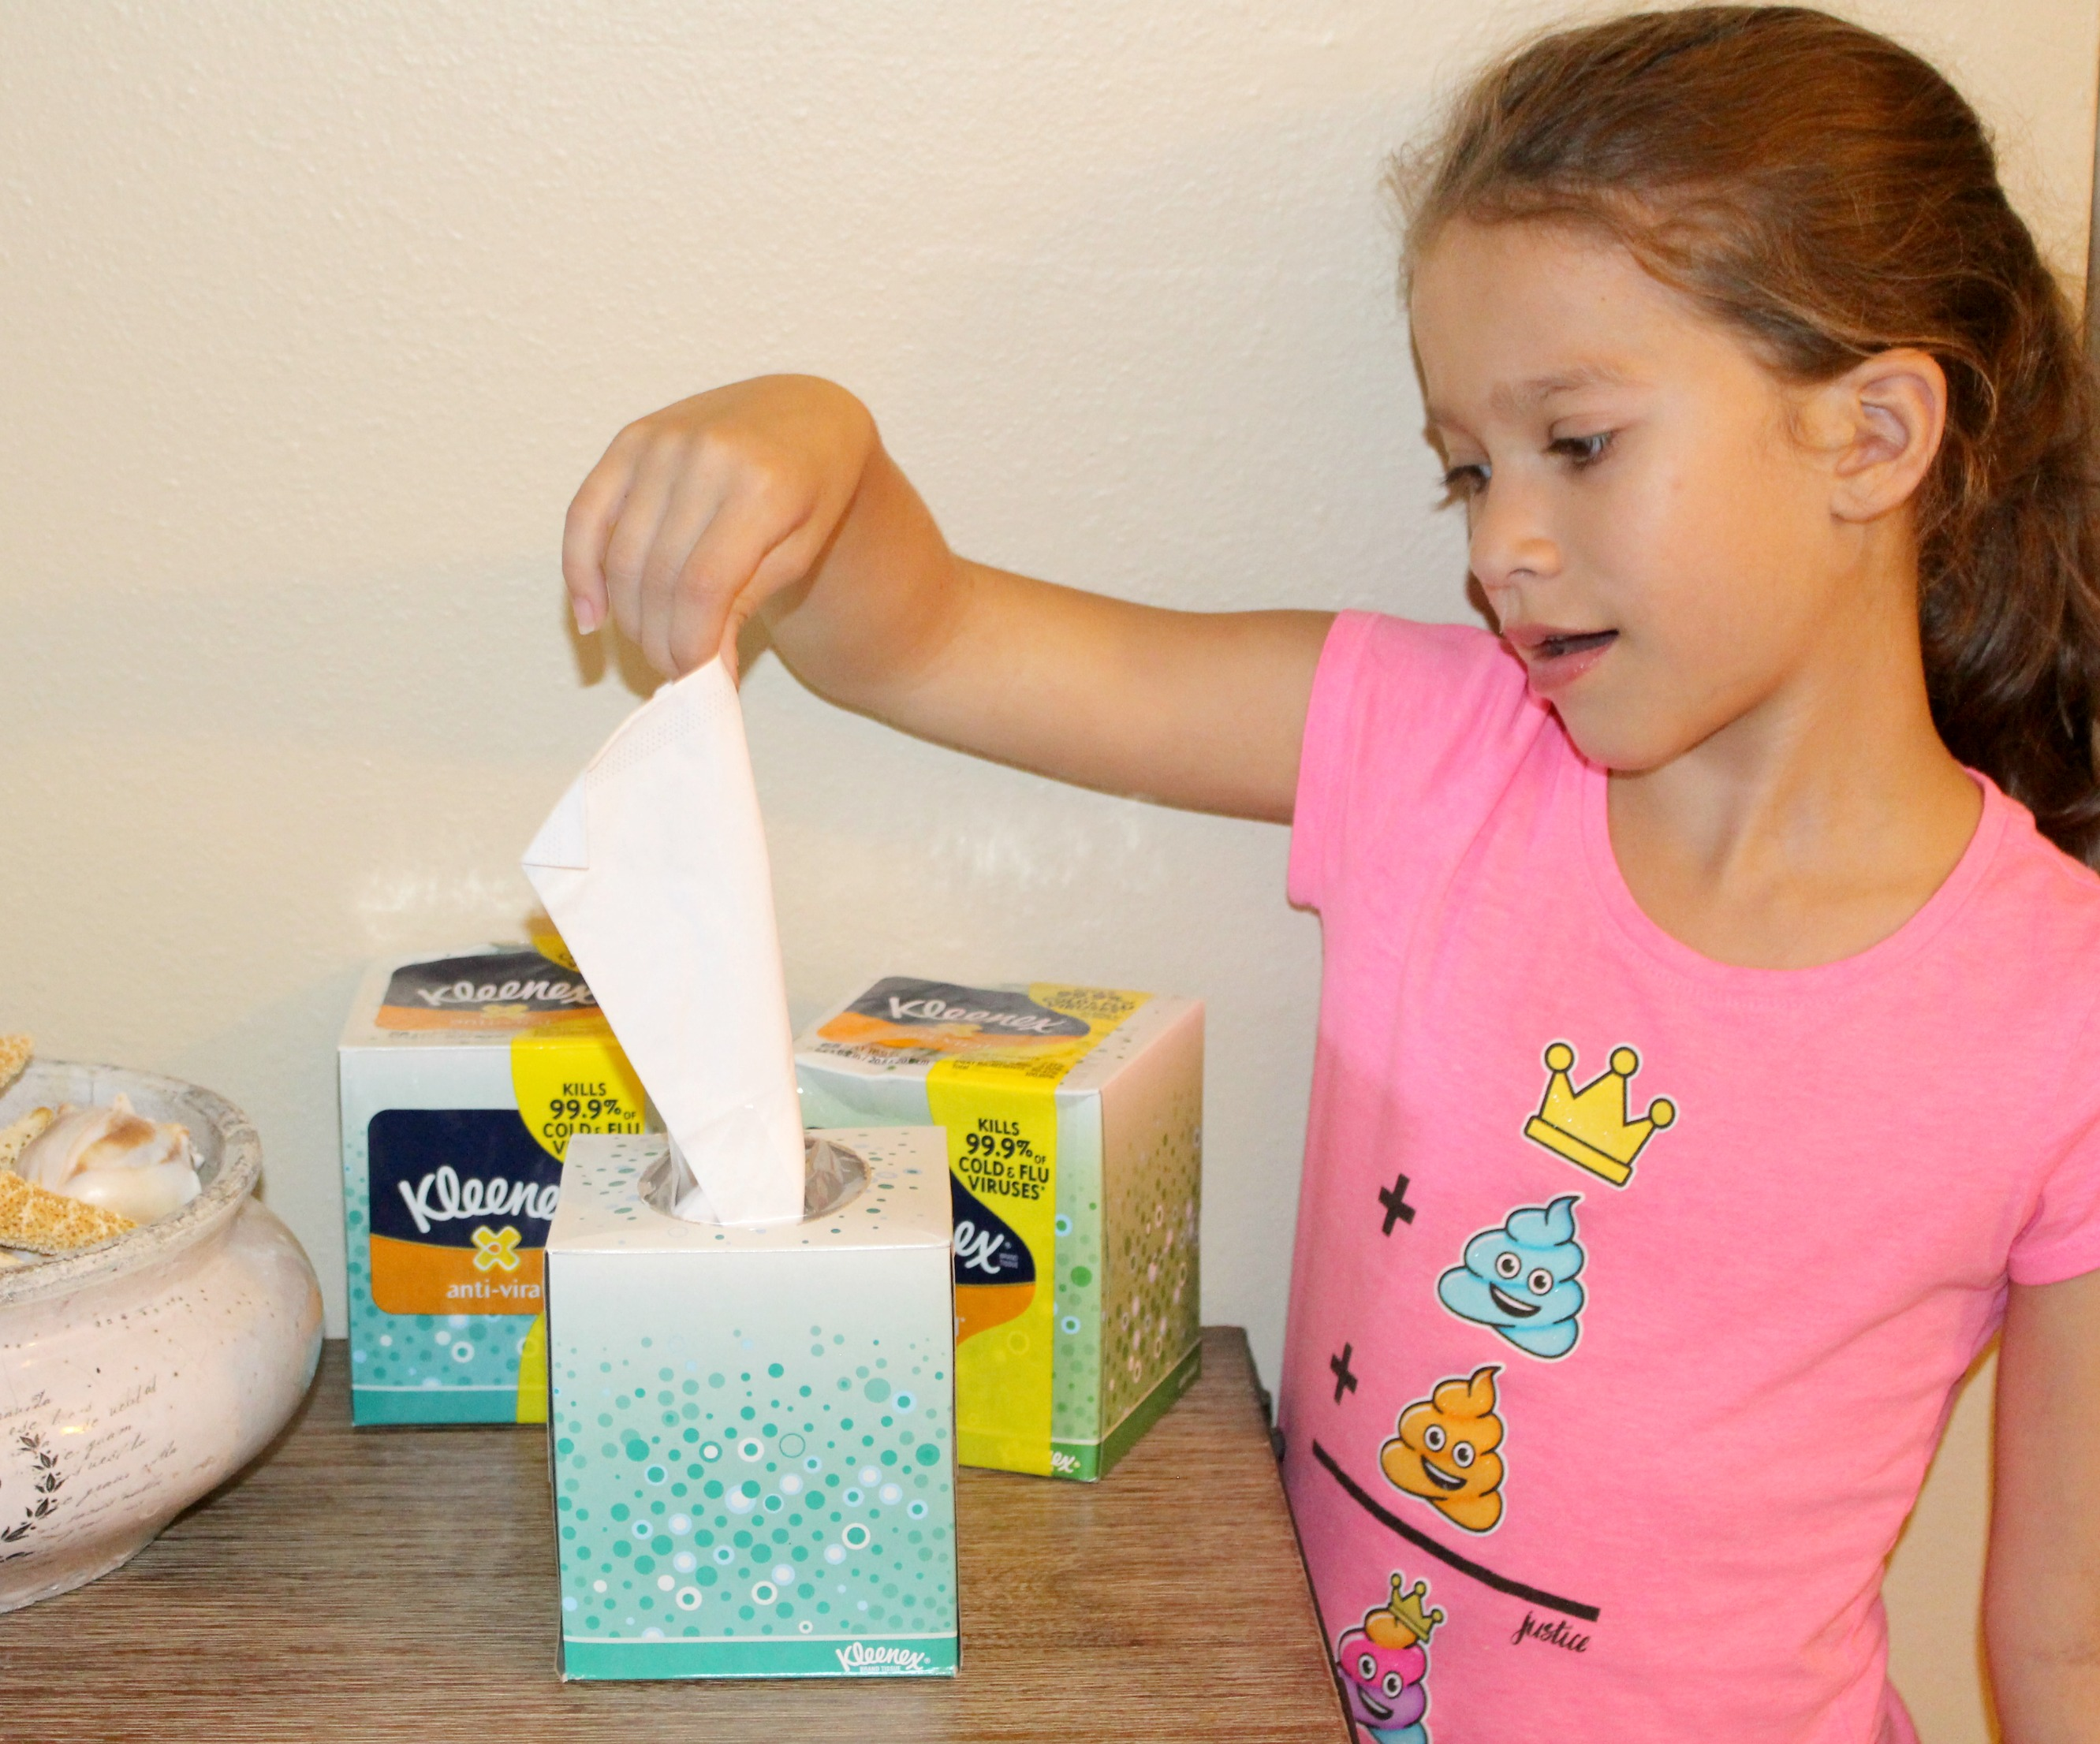 Kleenex Anti-Viral-tissue-stock-up-school-supplies